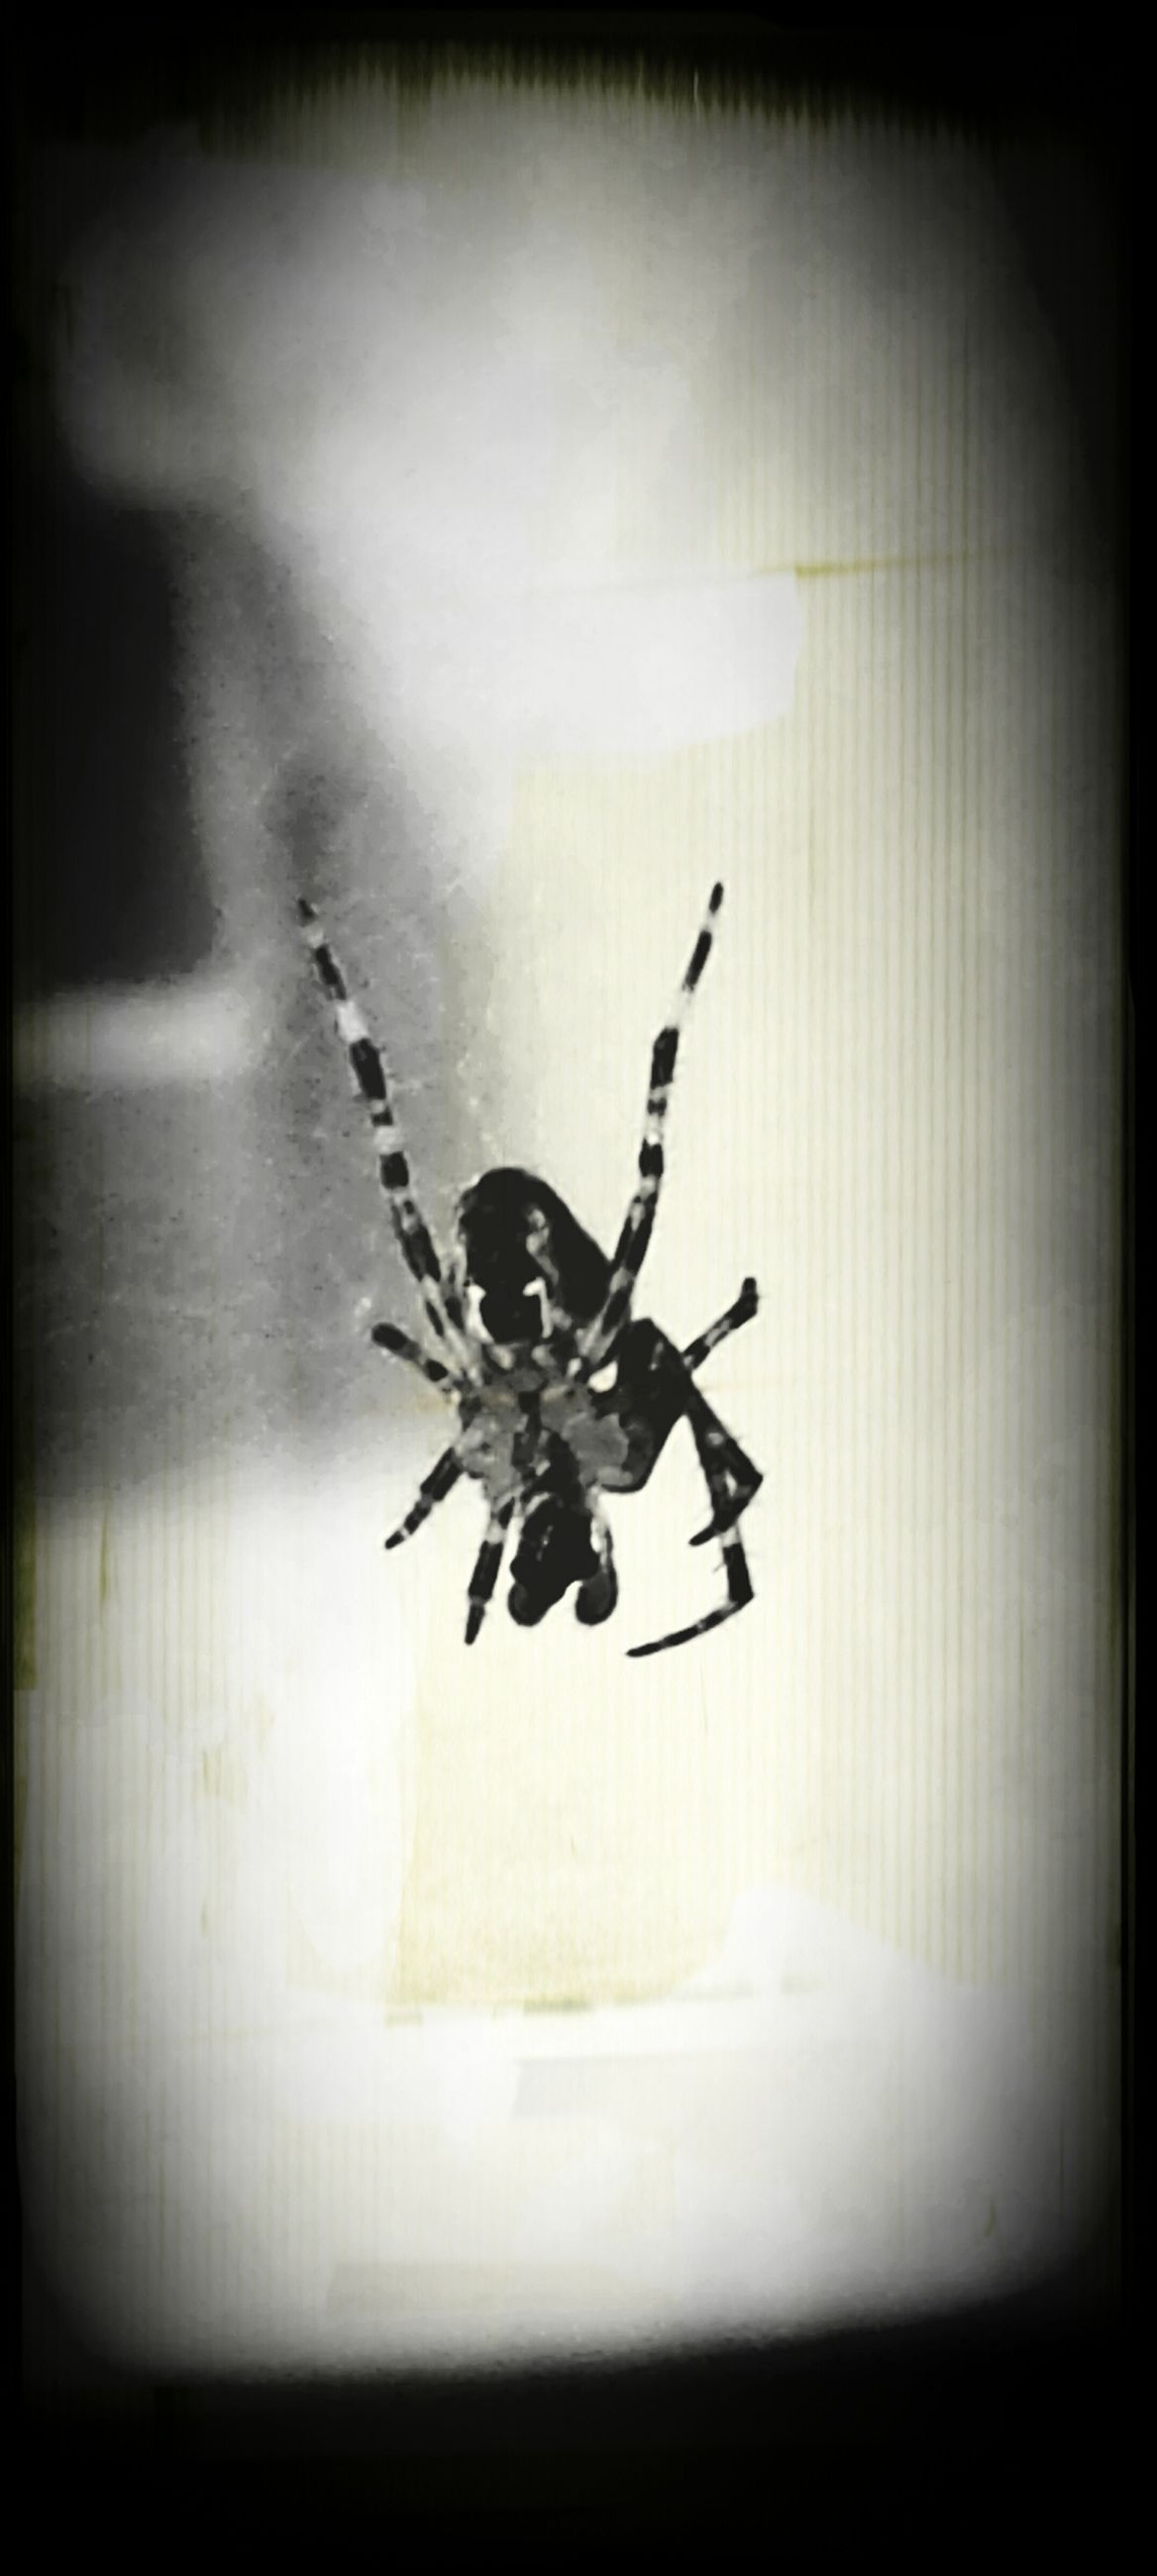 indoors, insect, animal themes, one animal, spider, auto post production filter, wildlife, transfer print, animals in the wild, window, glass - material, wall - building feature, selective focus, close-up, vignette, full length, no people, spider web, glass, wall